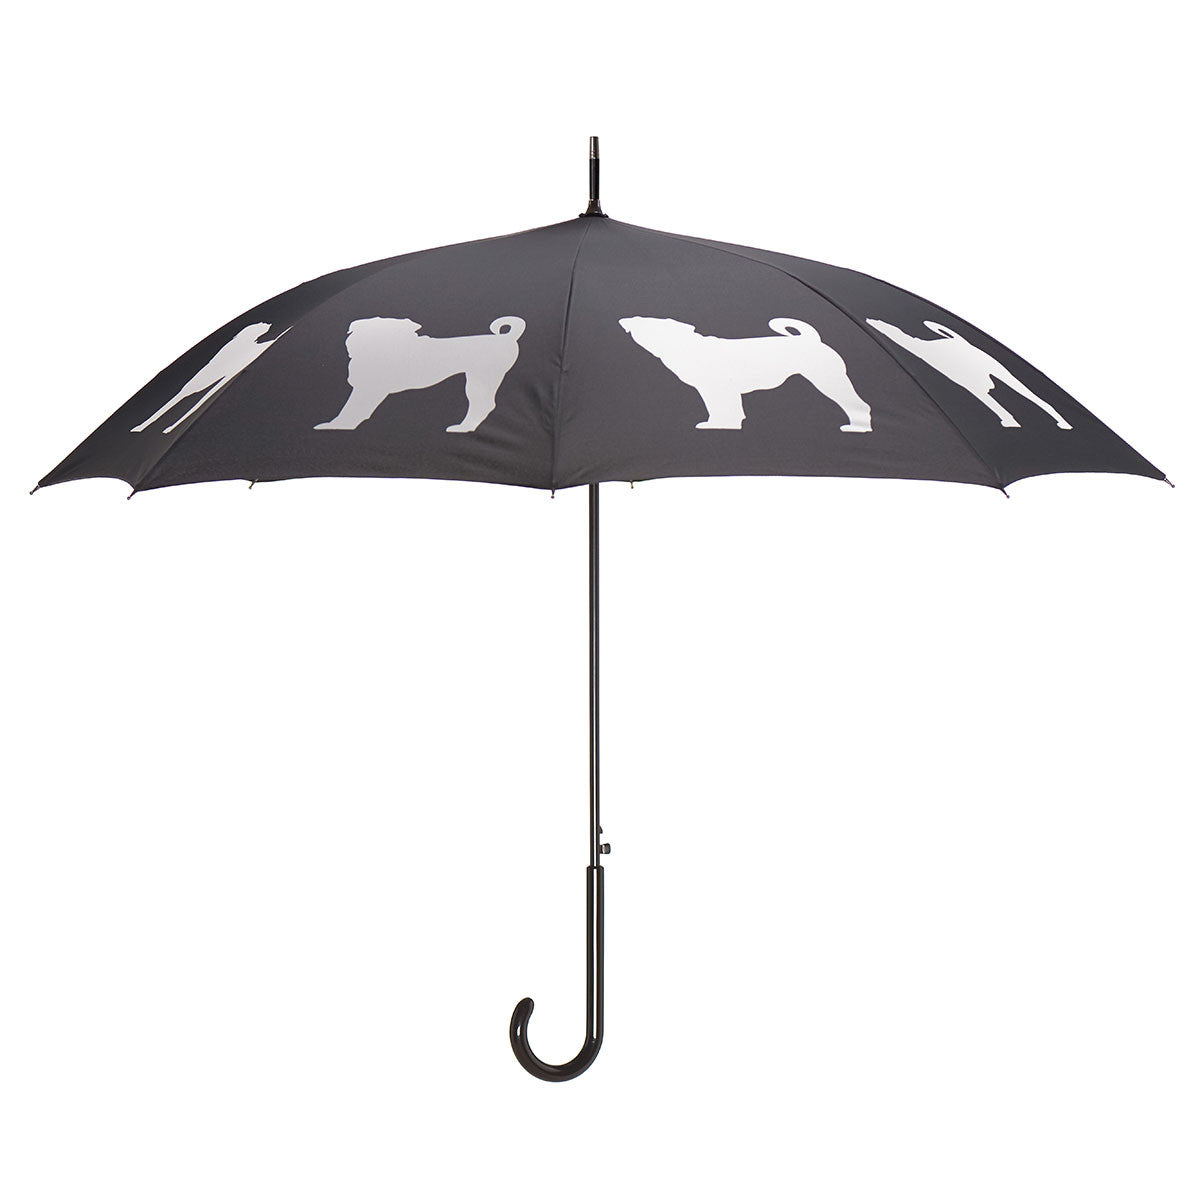 Pug Umbrella White on Black w/ sleeve and shoulder strap